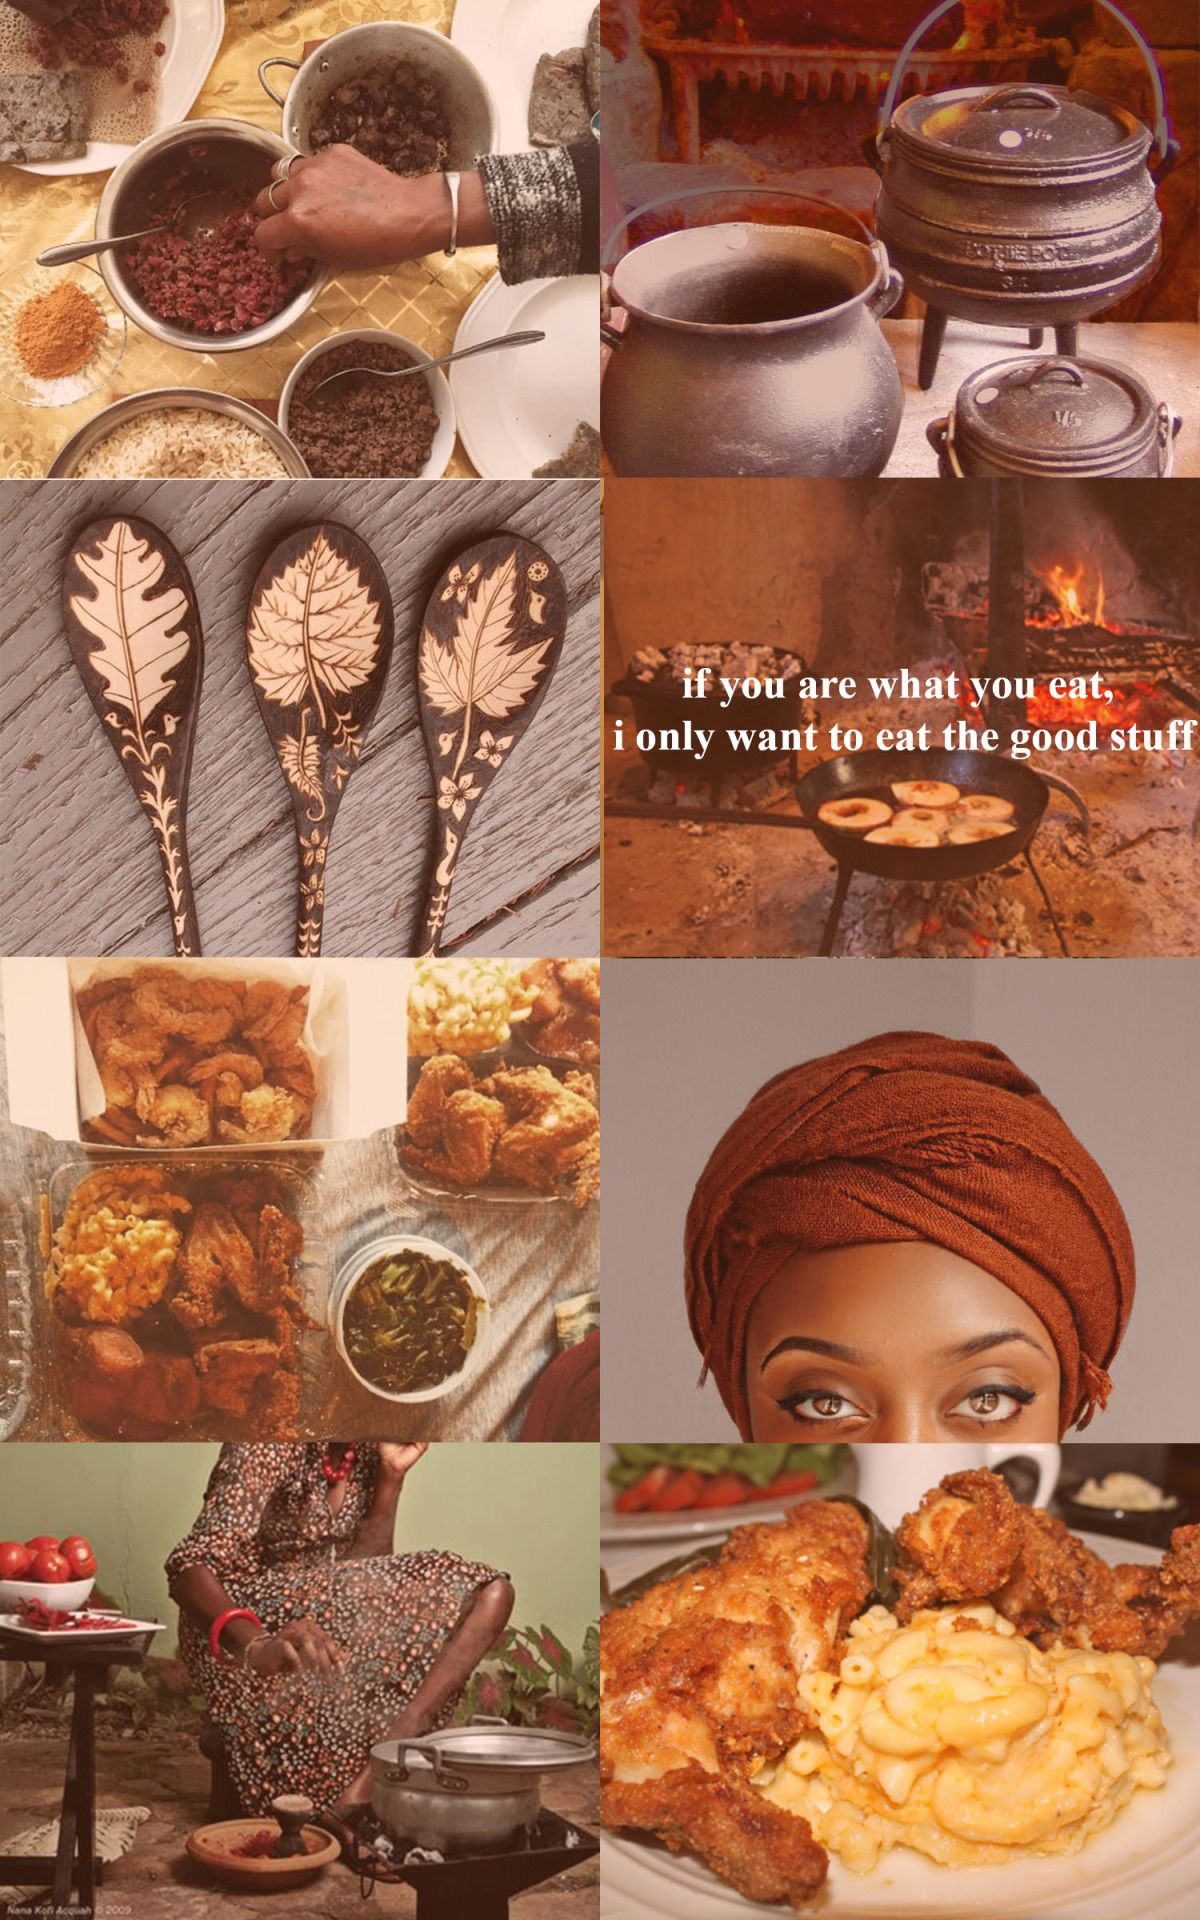 Bathtime Witches Brew Afrowitch Aesthetic Kitchen Witch Because I Never See Kitchen Witch Kitchen Witch Kitchen Witchery Cooking In Kitchen Aesthetic